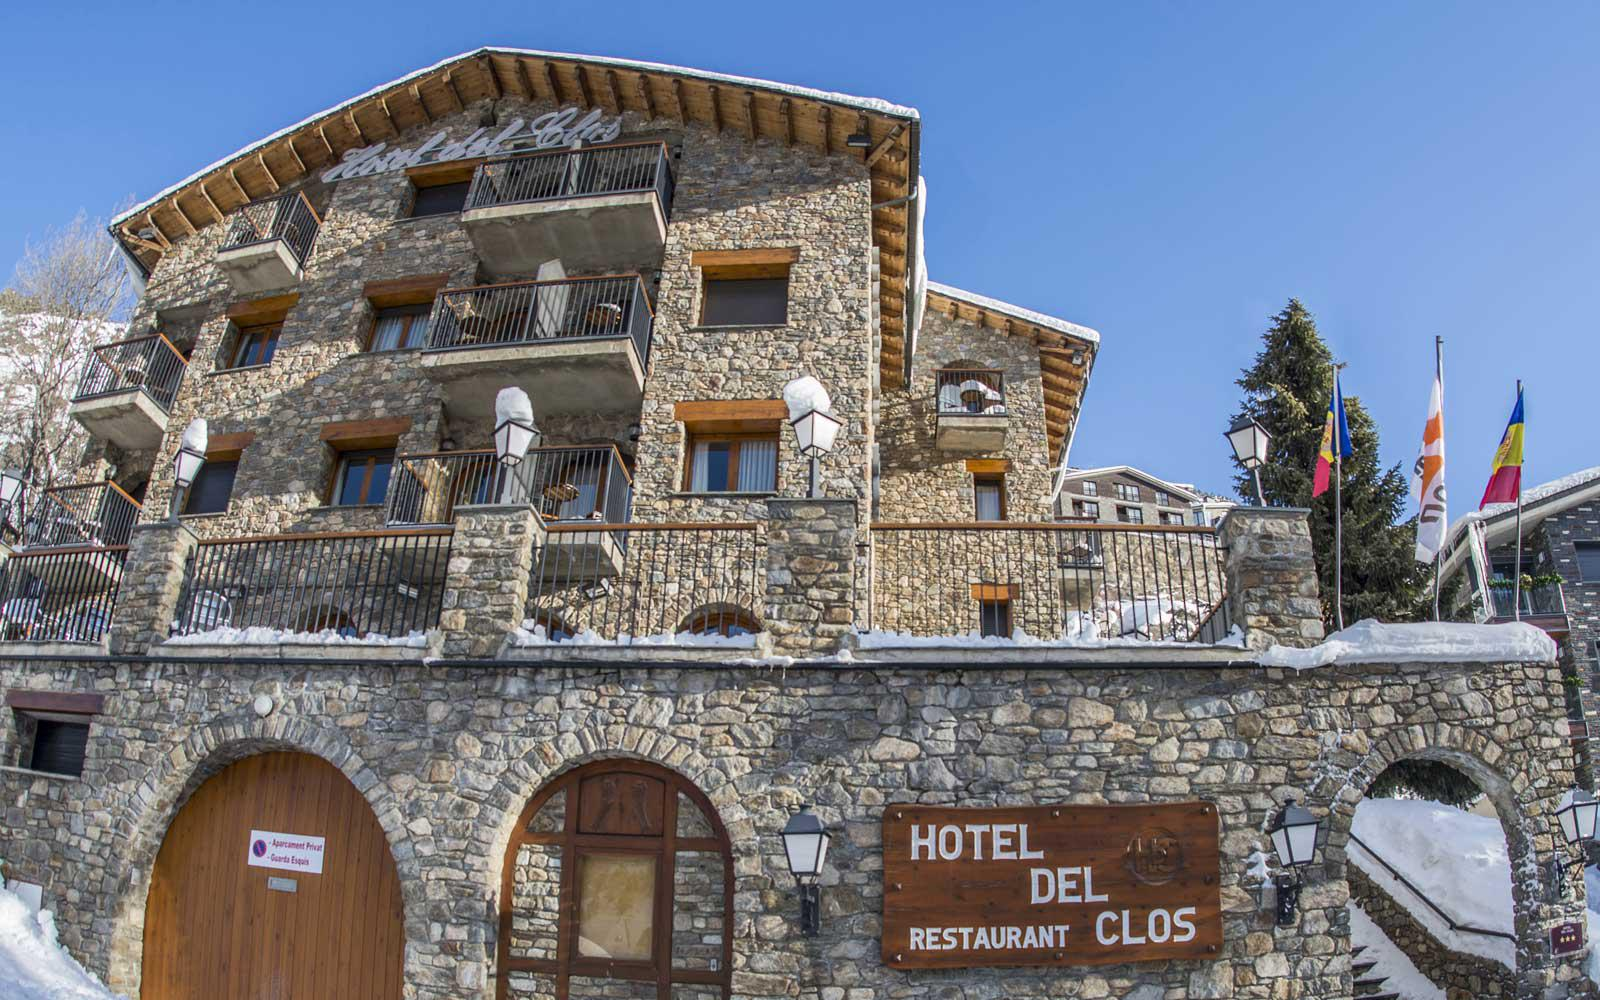 I Ski Co Uk Club Hotel Del Clos El Tarter Andorra